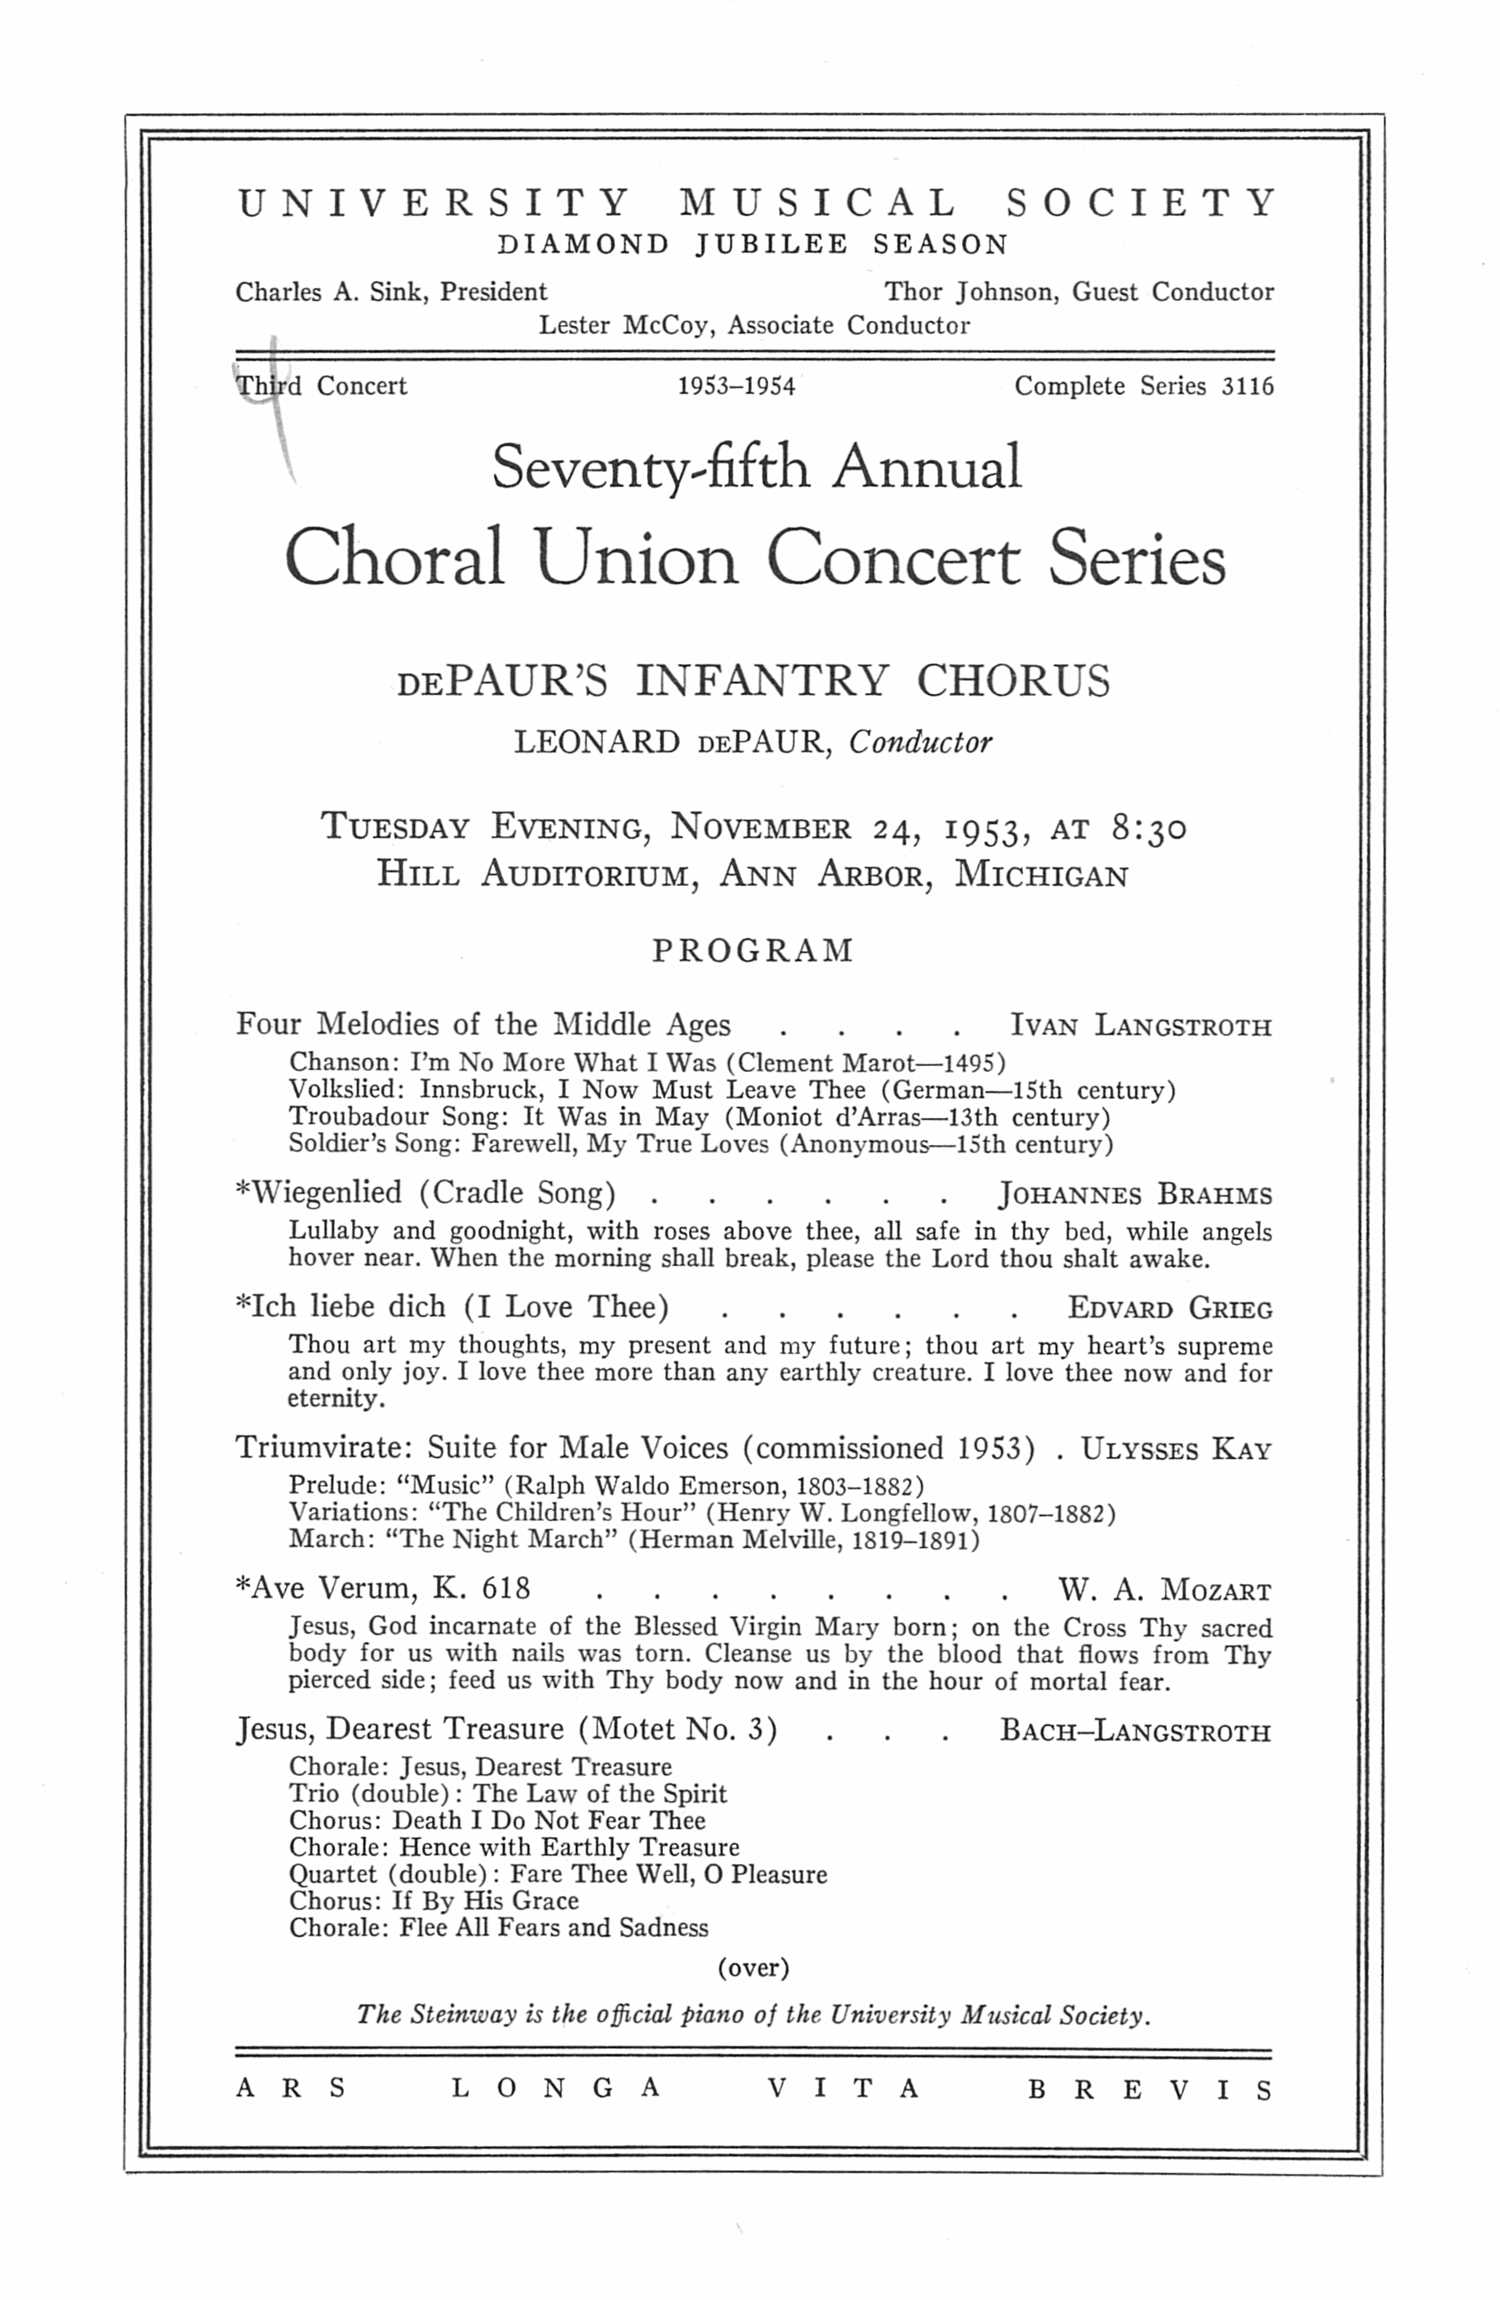 UMS Concert Program, November 24: Seventy-fifth Annual Choral Union Concert Series -- Leonard Depaur image